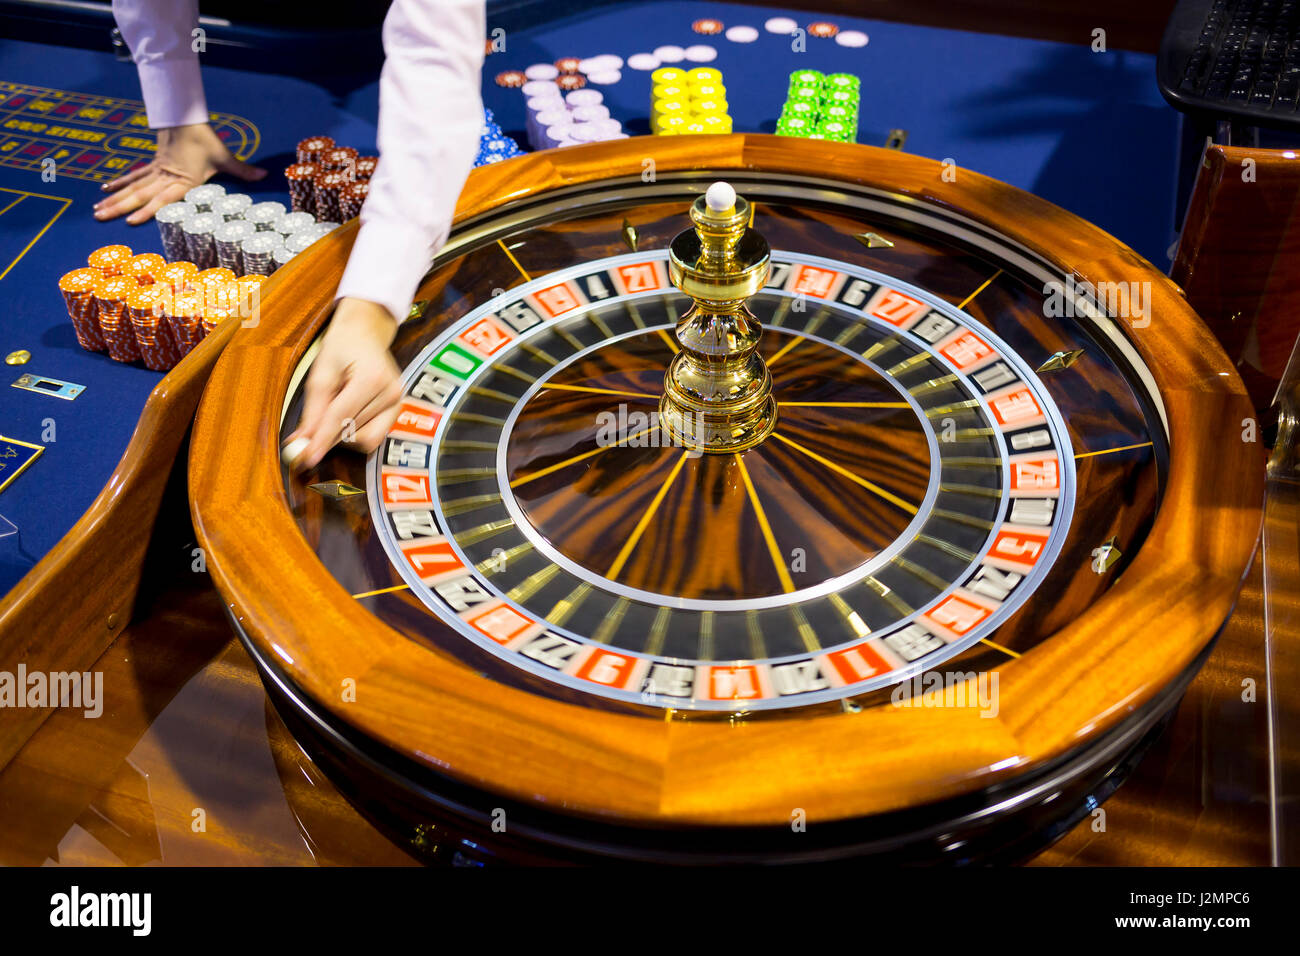 Best bets to make on craps table